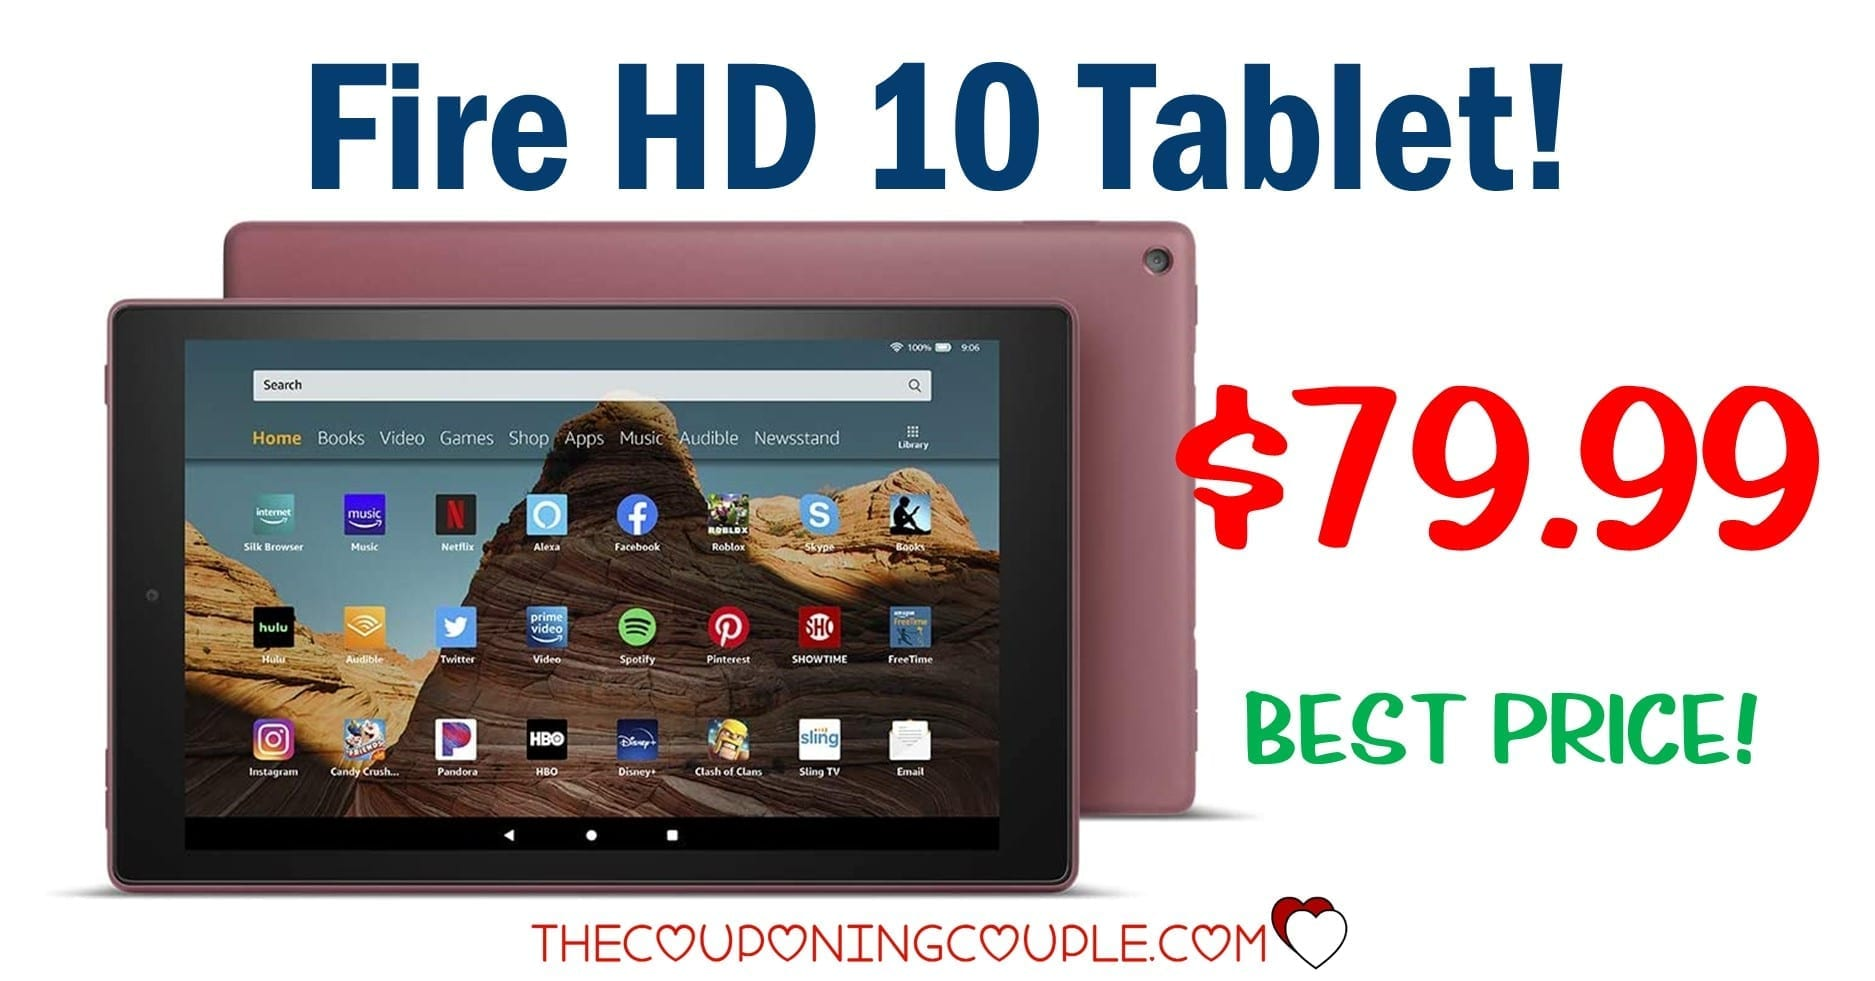 HOT PRICE! Fire HD 10 Tablet ONLY $79.99! (Save $70!)